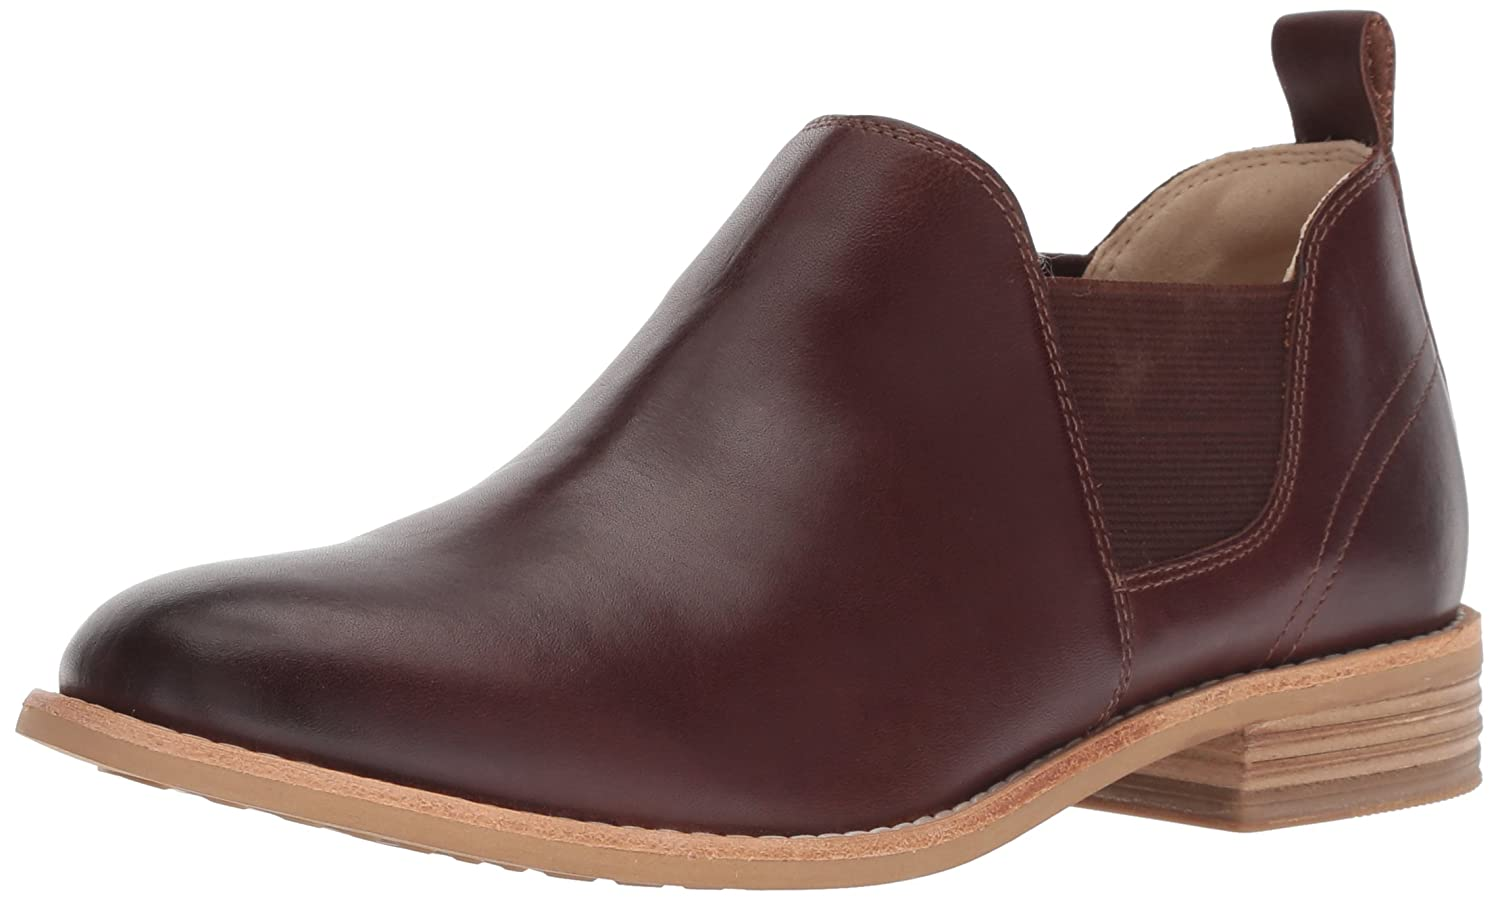 Dark Tan Leather Clarks Womens Edenvale Page Fashion Boot